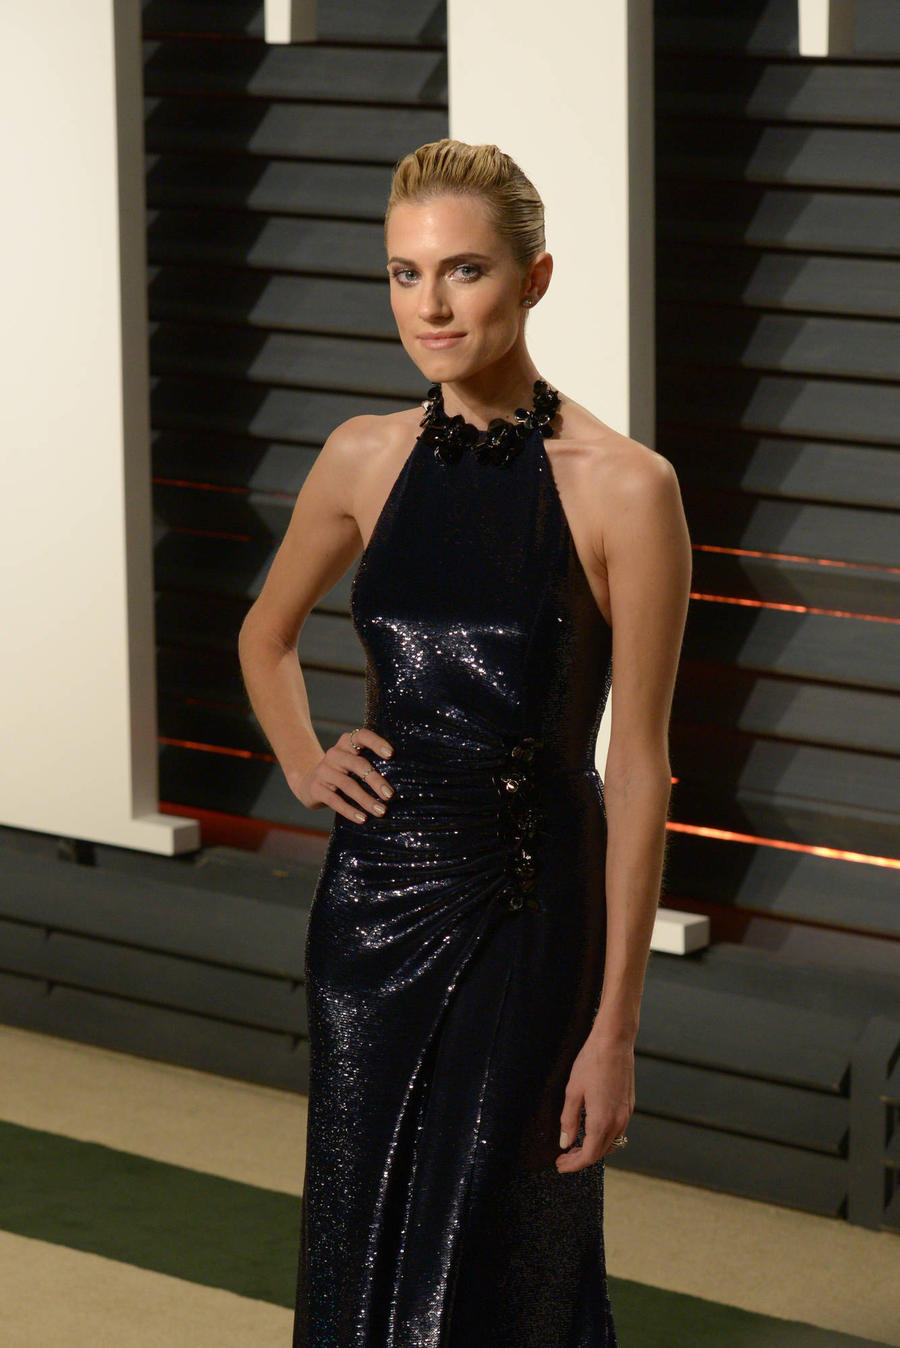 Allison Williams: 'Hollywood Bosses Are Too Old, White And Male'